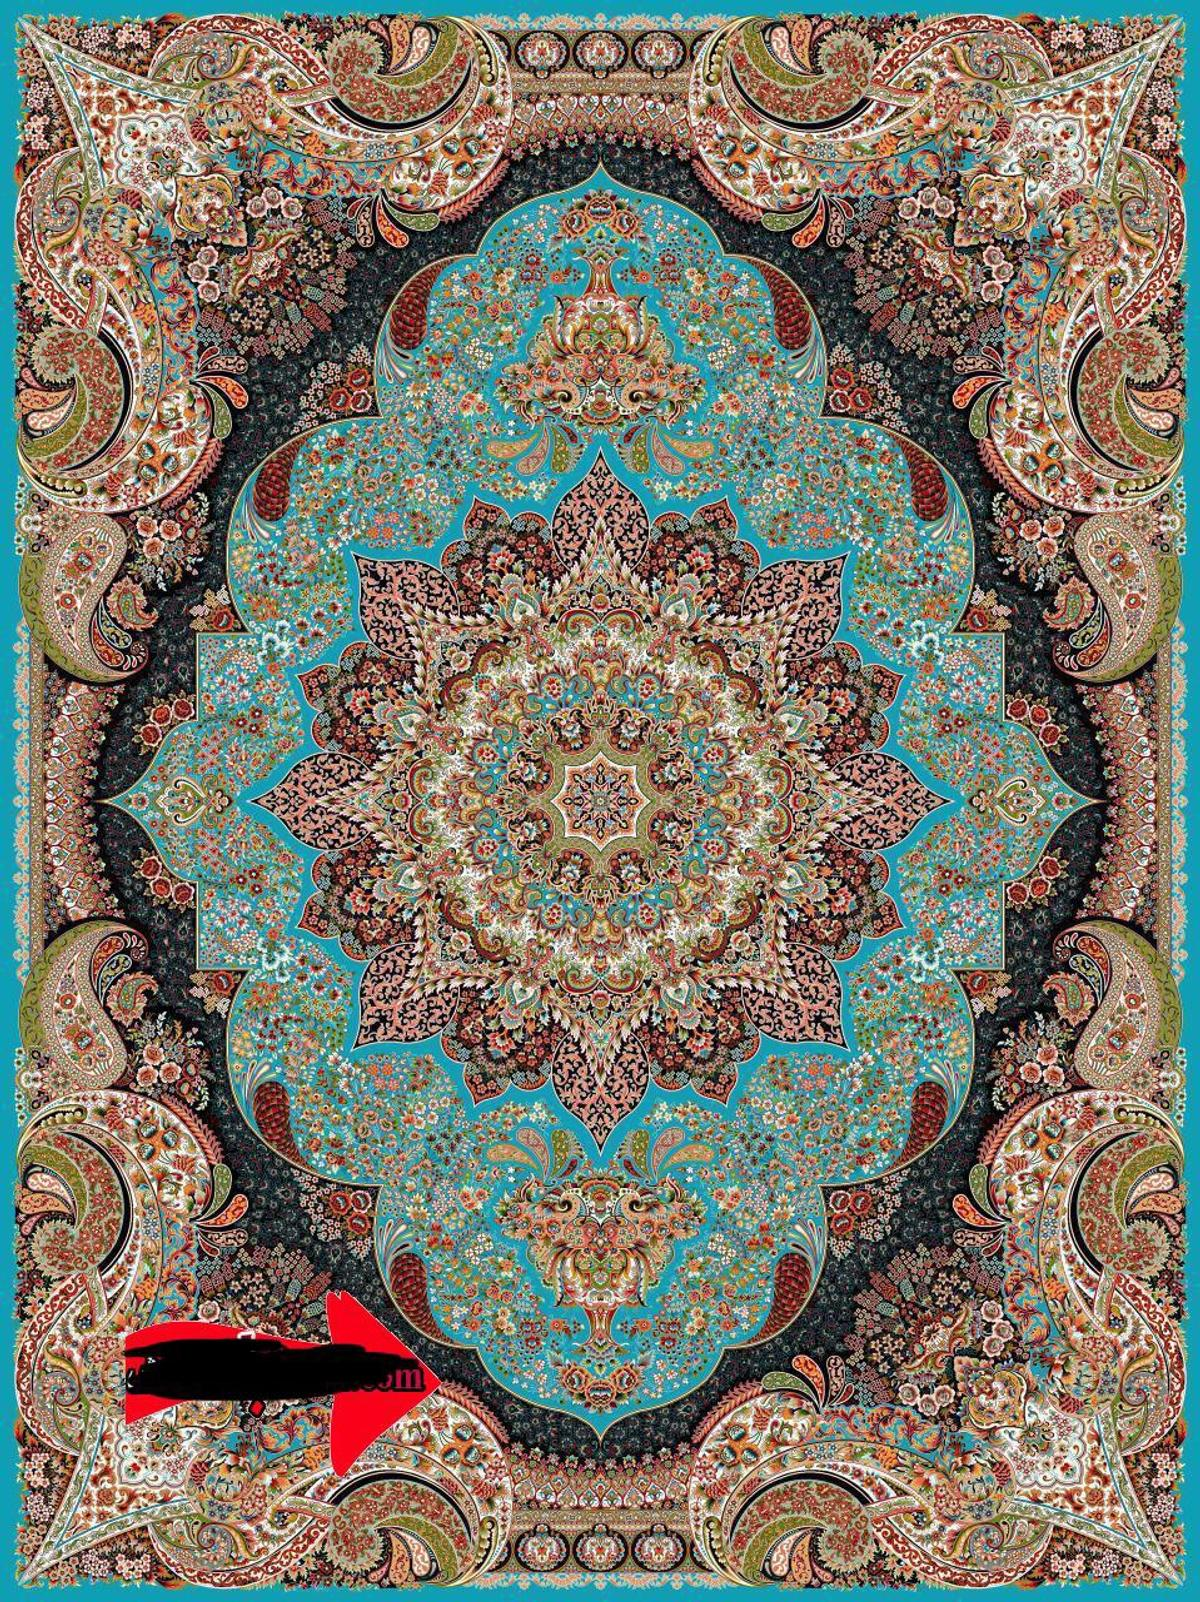 2 Identical Persian Rugs In W14 Fulham